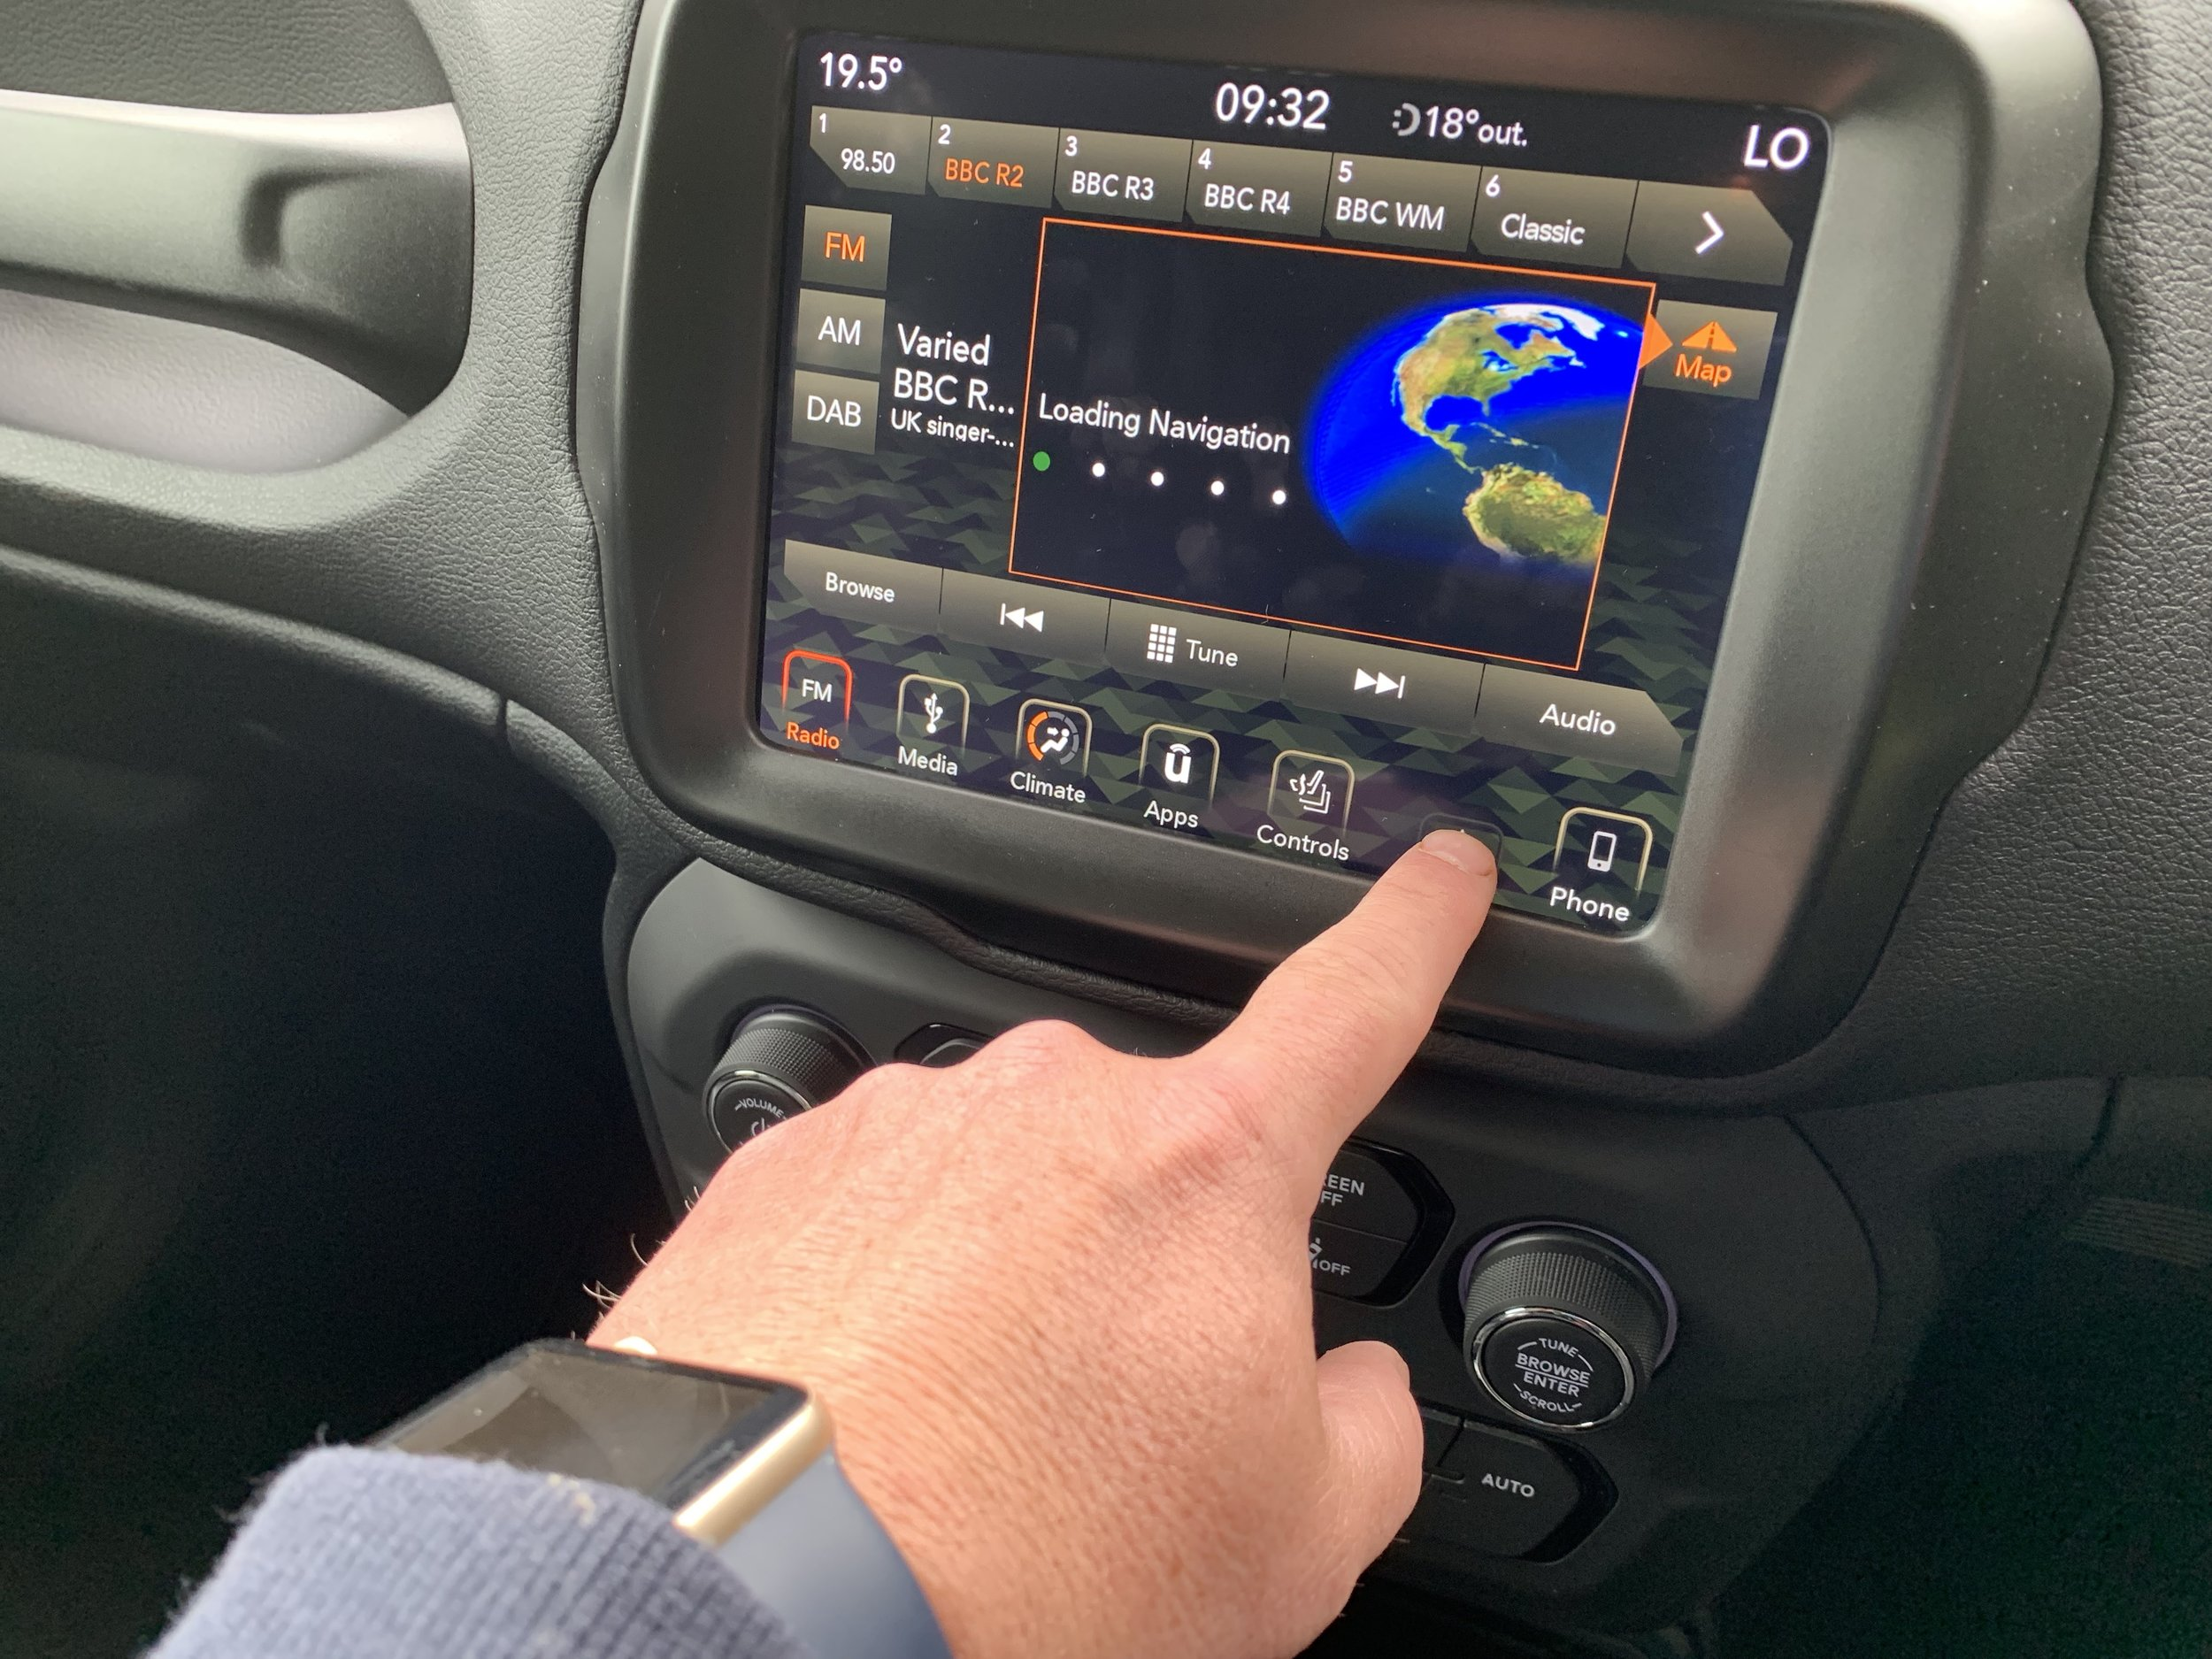 Easy to use touchscreen display.